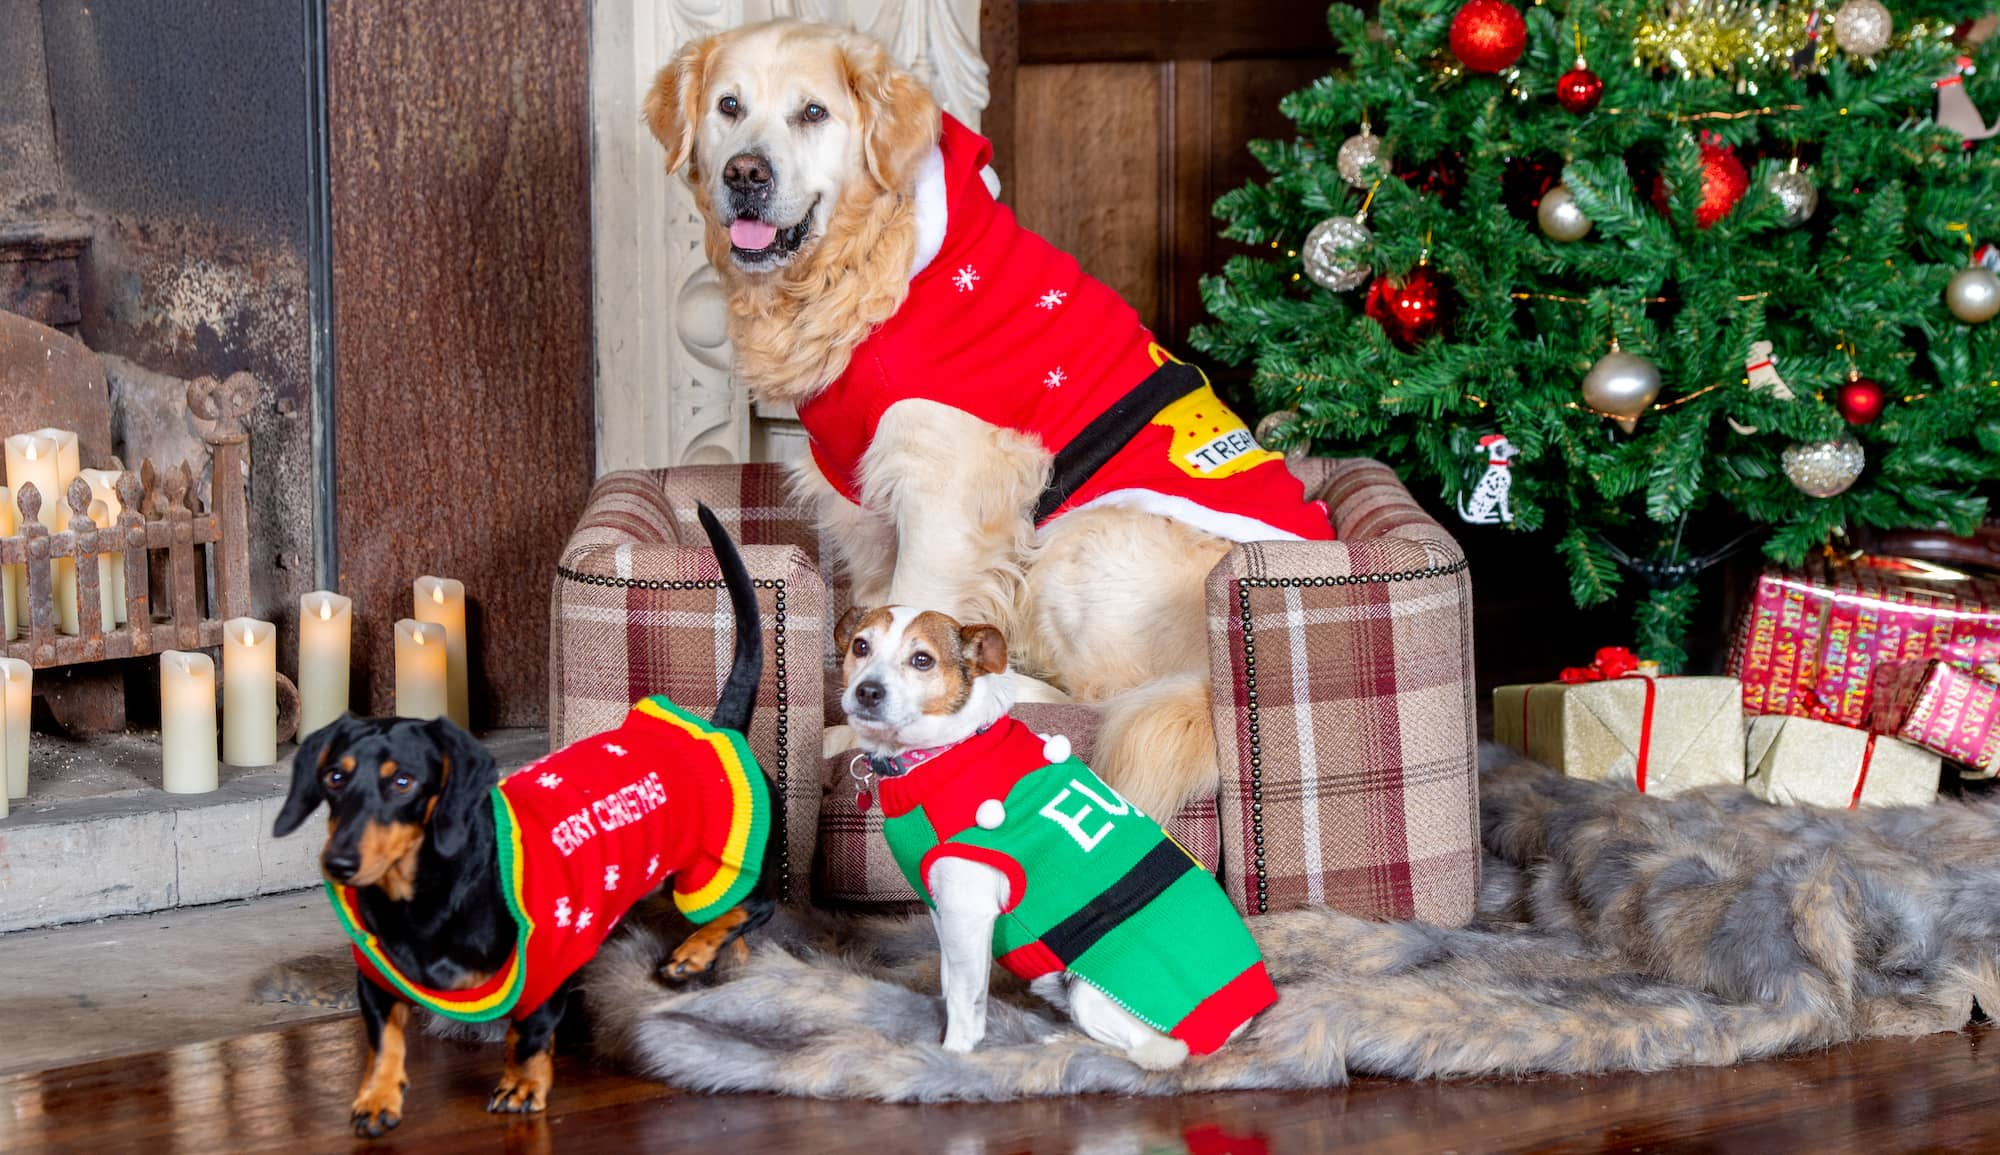 Three dogs sit in a dog Chesterfield under the christmas. The dogs wear Christmas jumpers and are surrounded by presents.